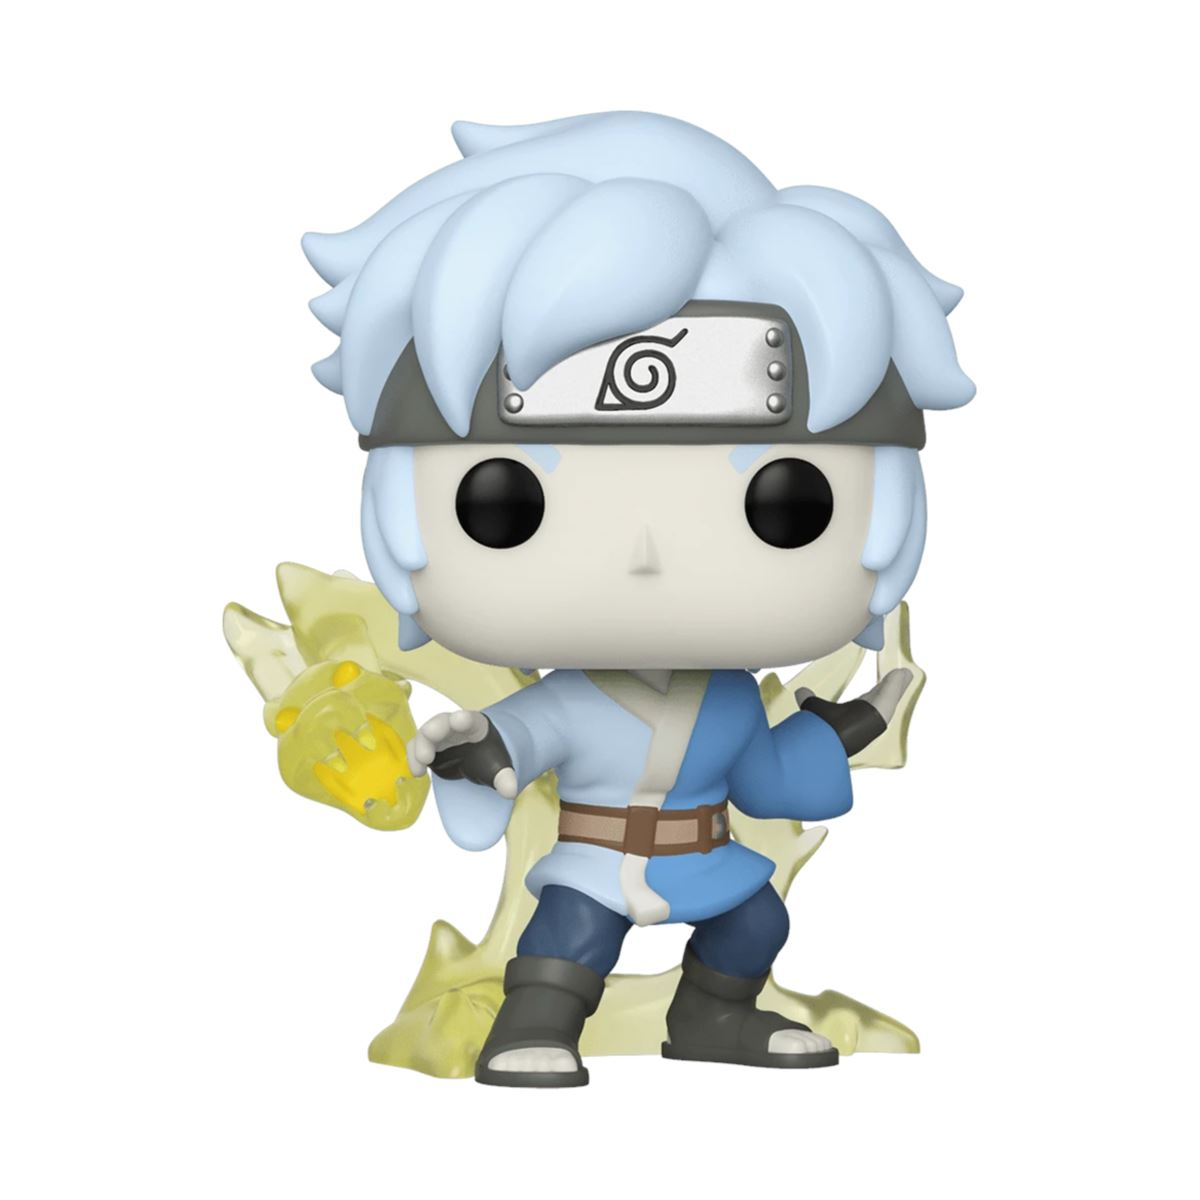 Mitsuki #673 Boruto Funko POP! Animation Pop! Funko